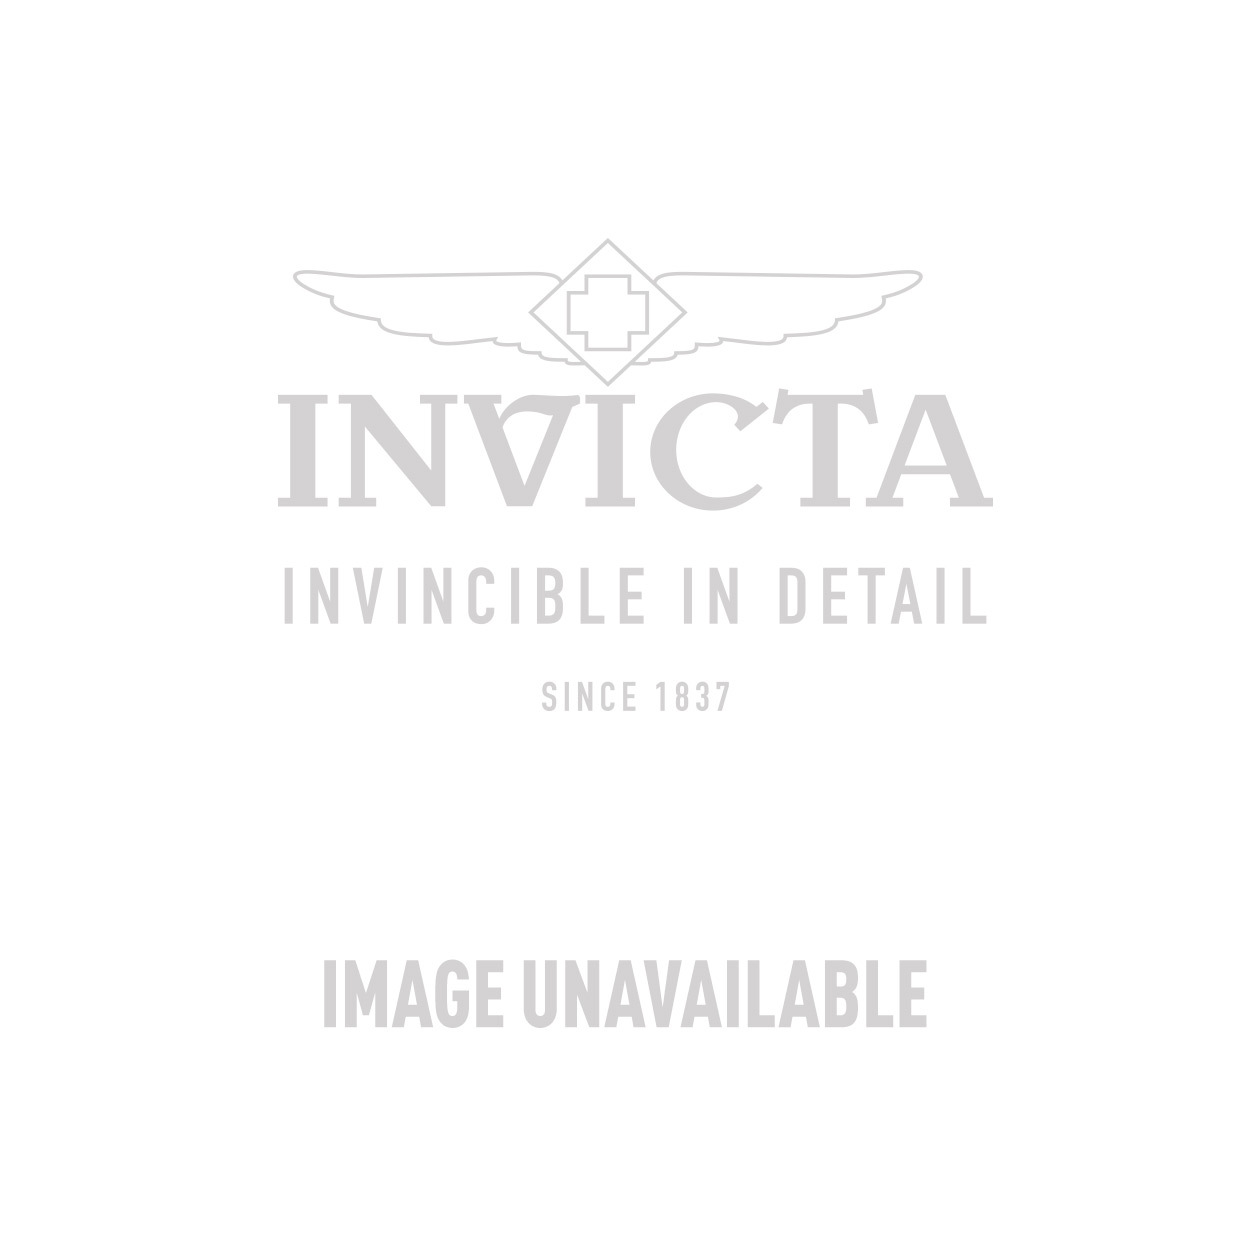 Invicta Excursion Swiss Made Quartz Watch - Gold, Black case with Gold, Black tone Stainless Steel band - Model 20141